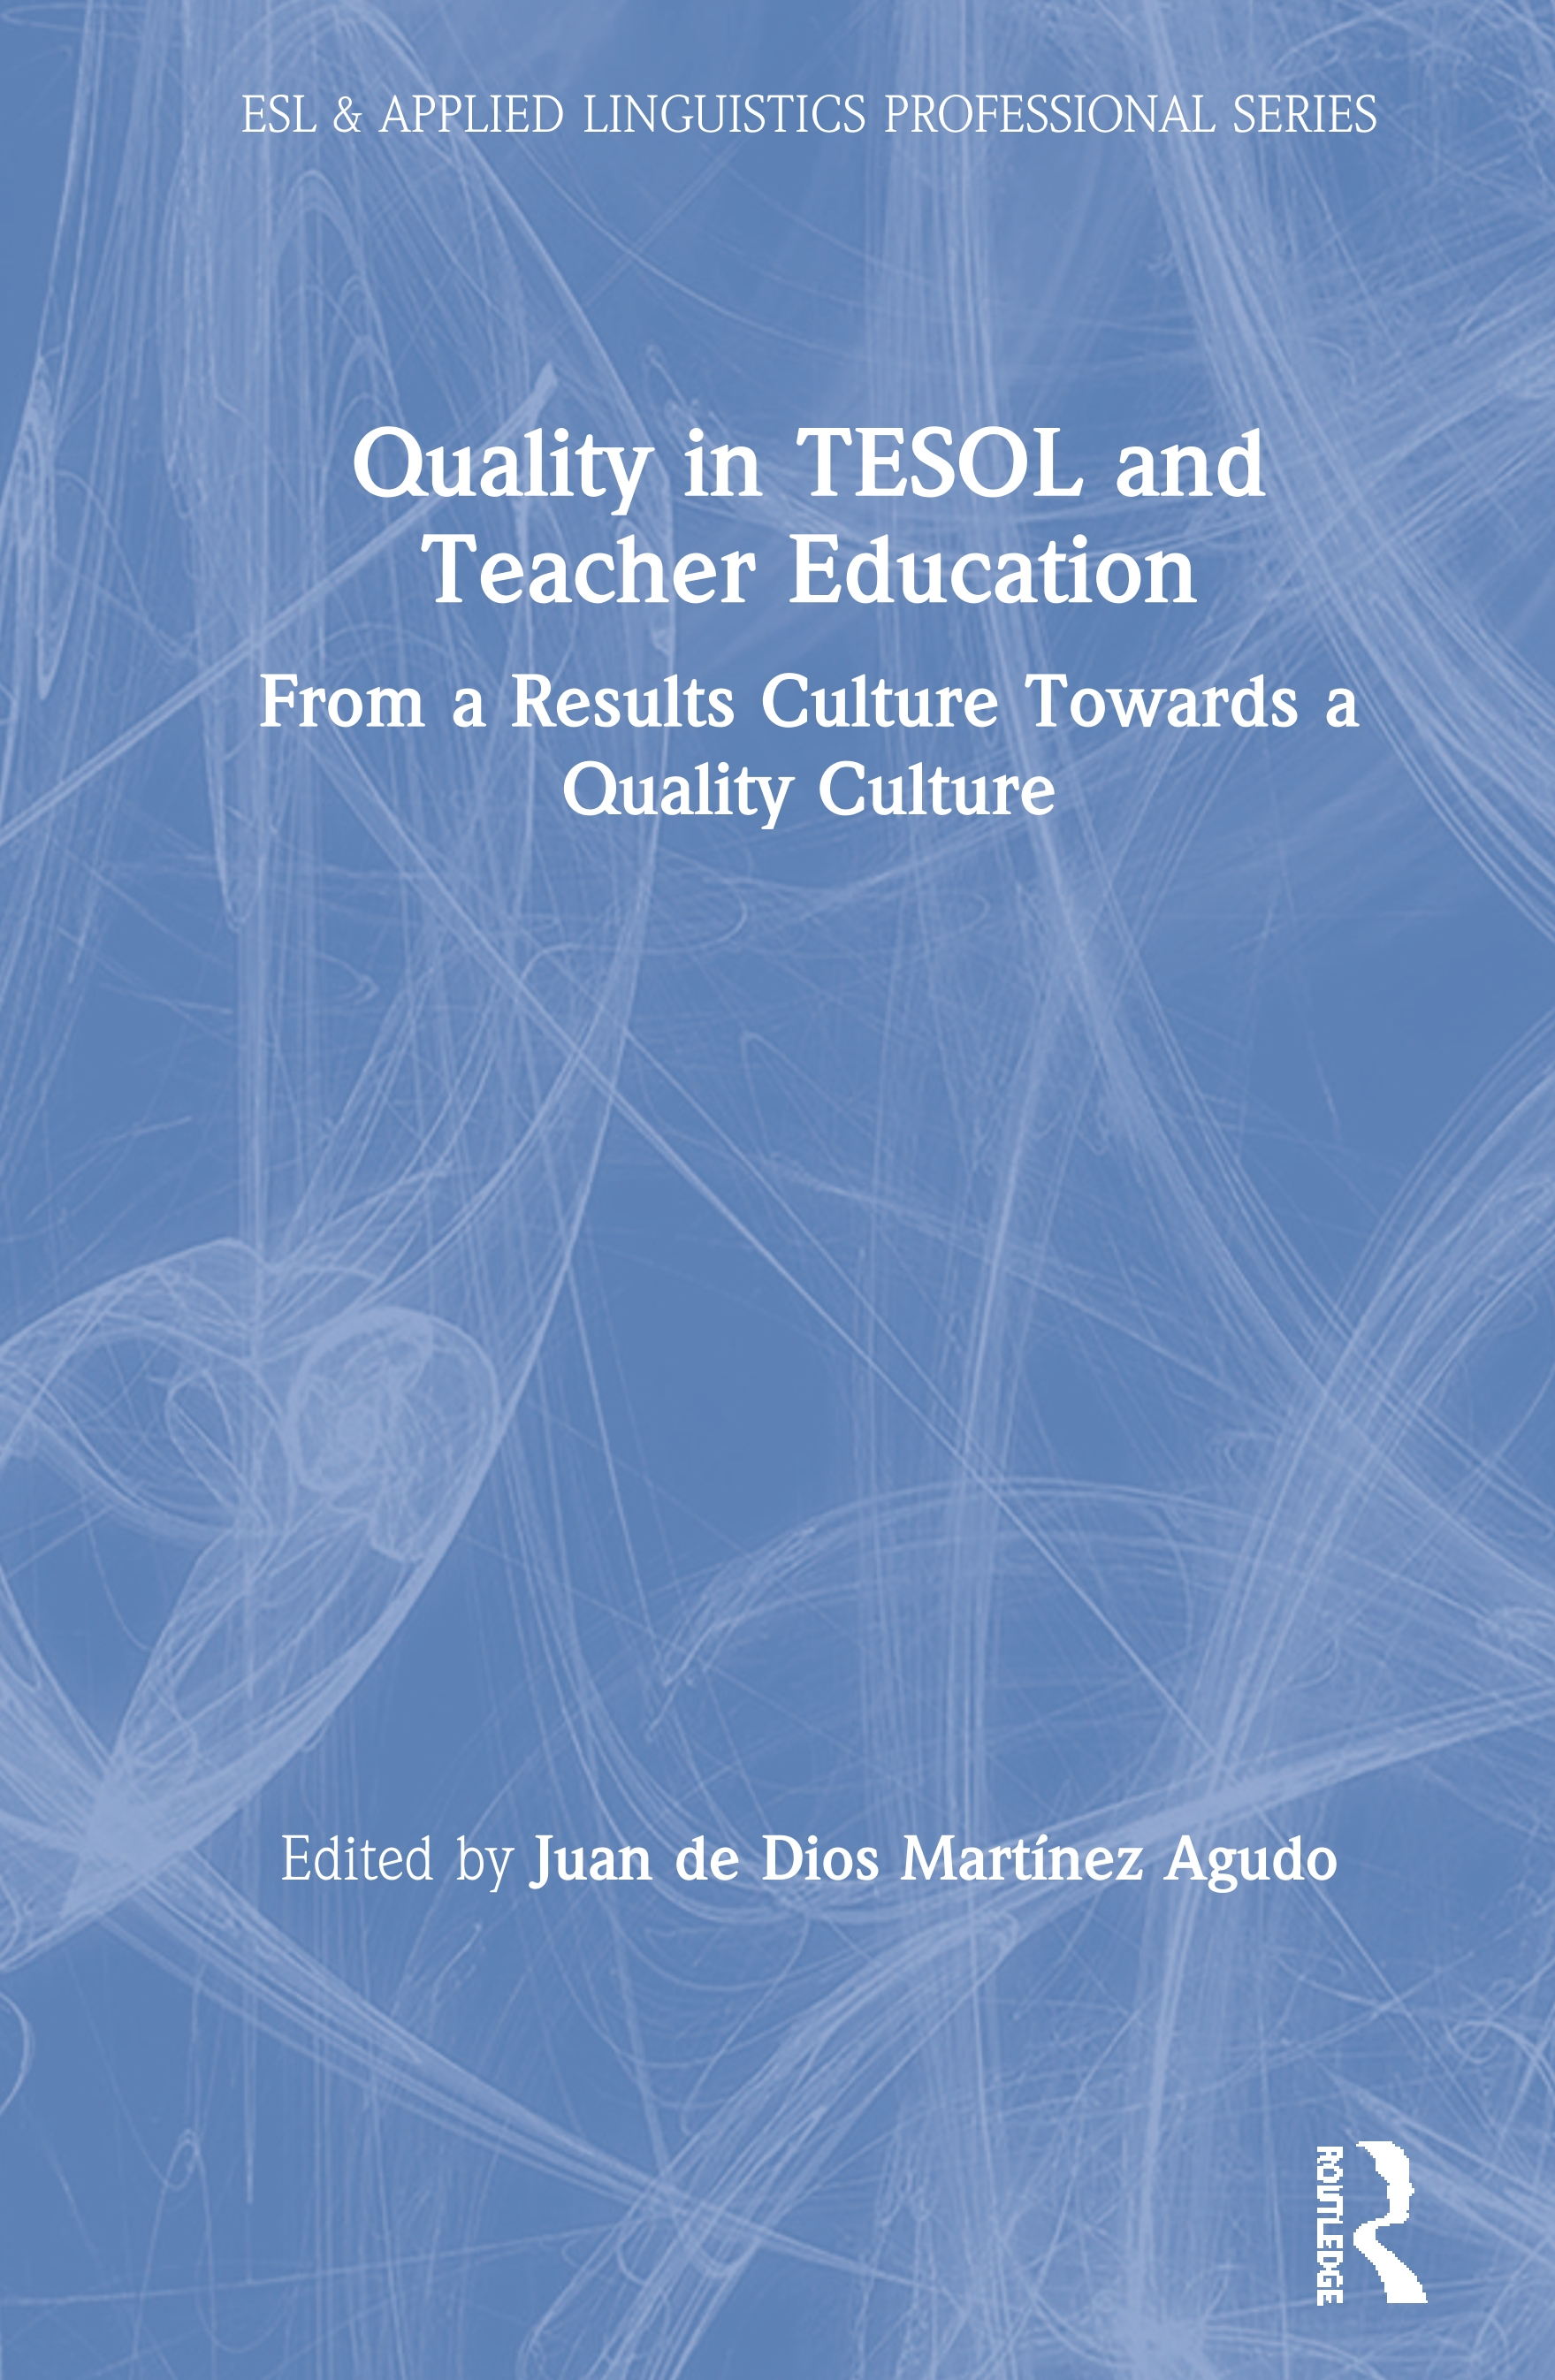 What is the Best Method, If any, In TESOL? What is the Desired Quality in the Post-Method Era?